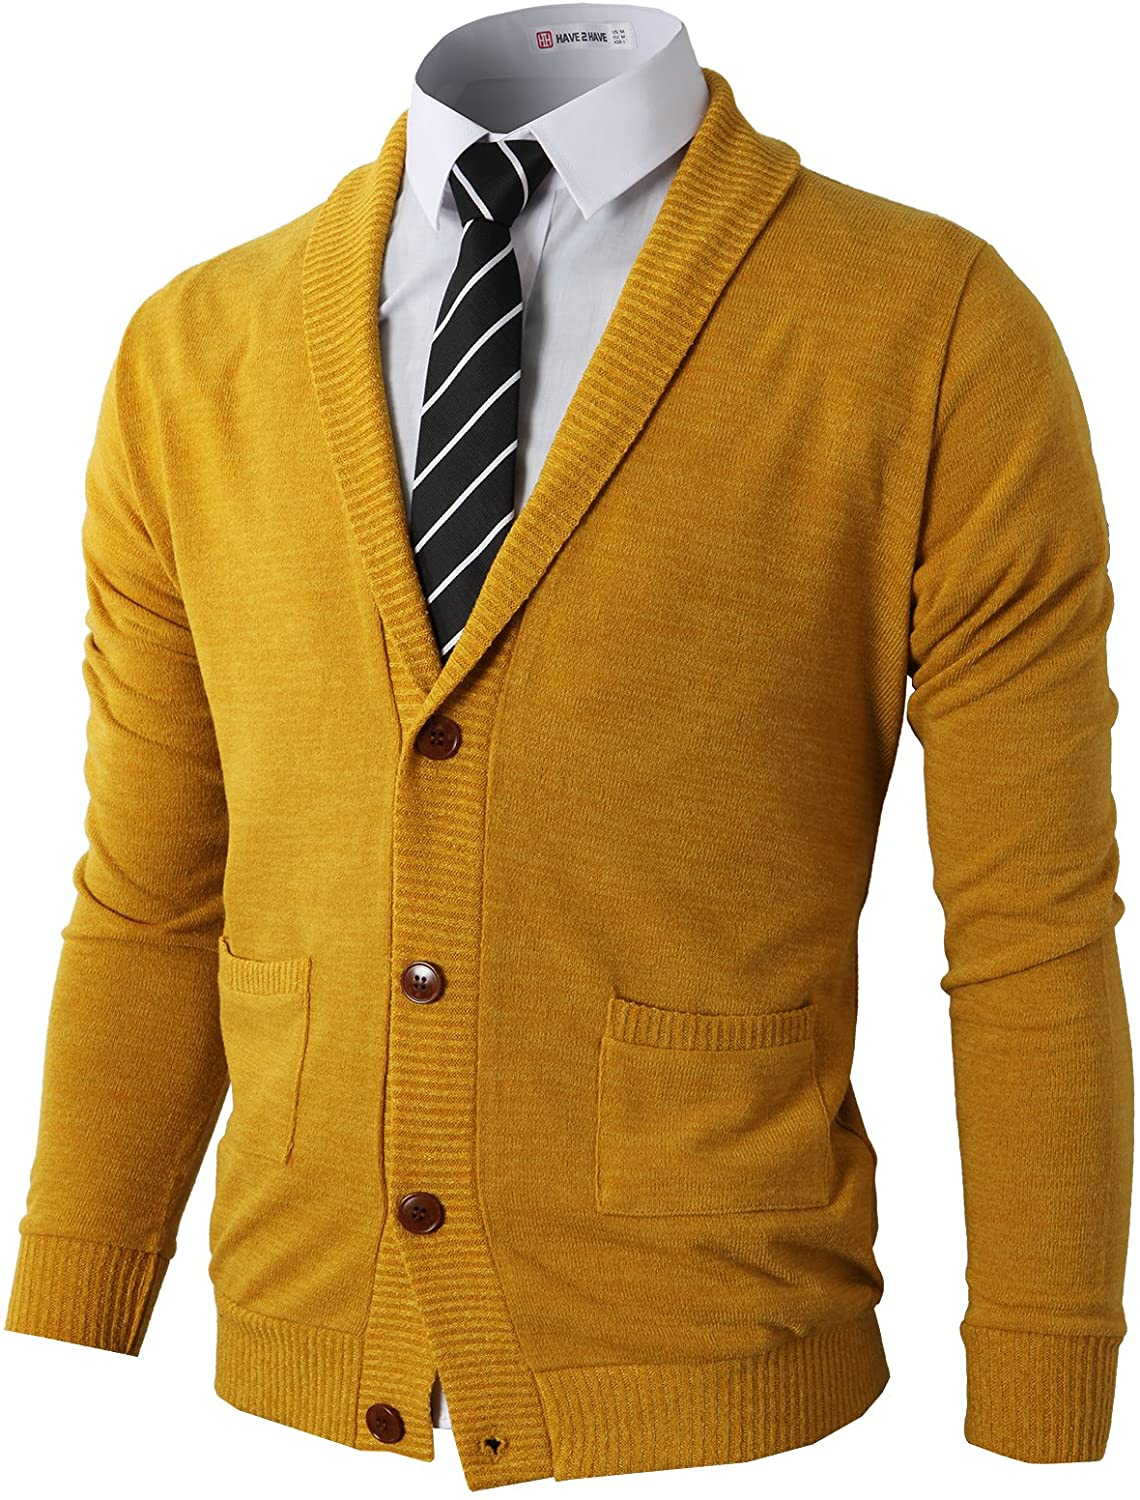 Men's Vintage Sweaters, Retro Jumpers 1920s to 1980s H2H Mens Casual Comfortable Fit Cardigan Sweater Shawl Collar Soft Fabric with Ribbing Edge $39.40 AT vintagedancer.com